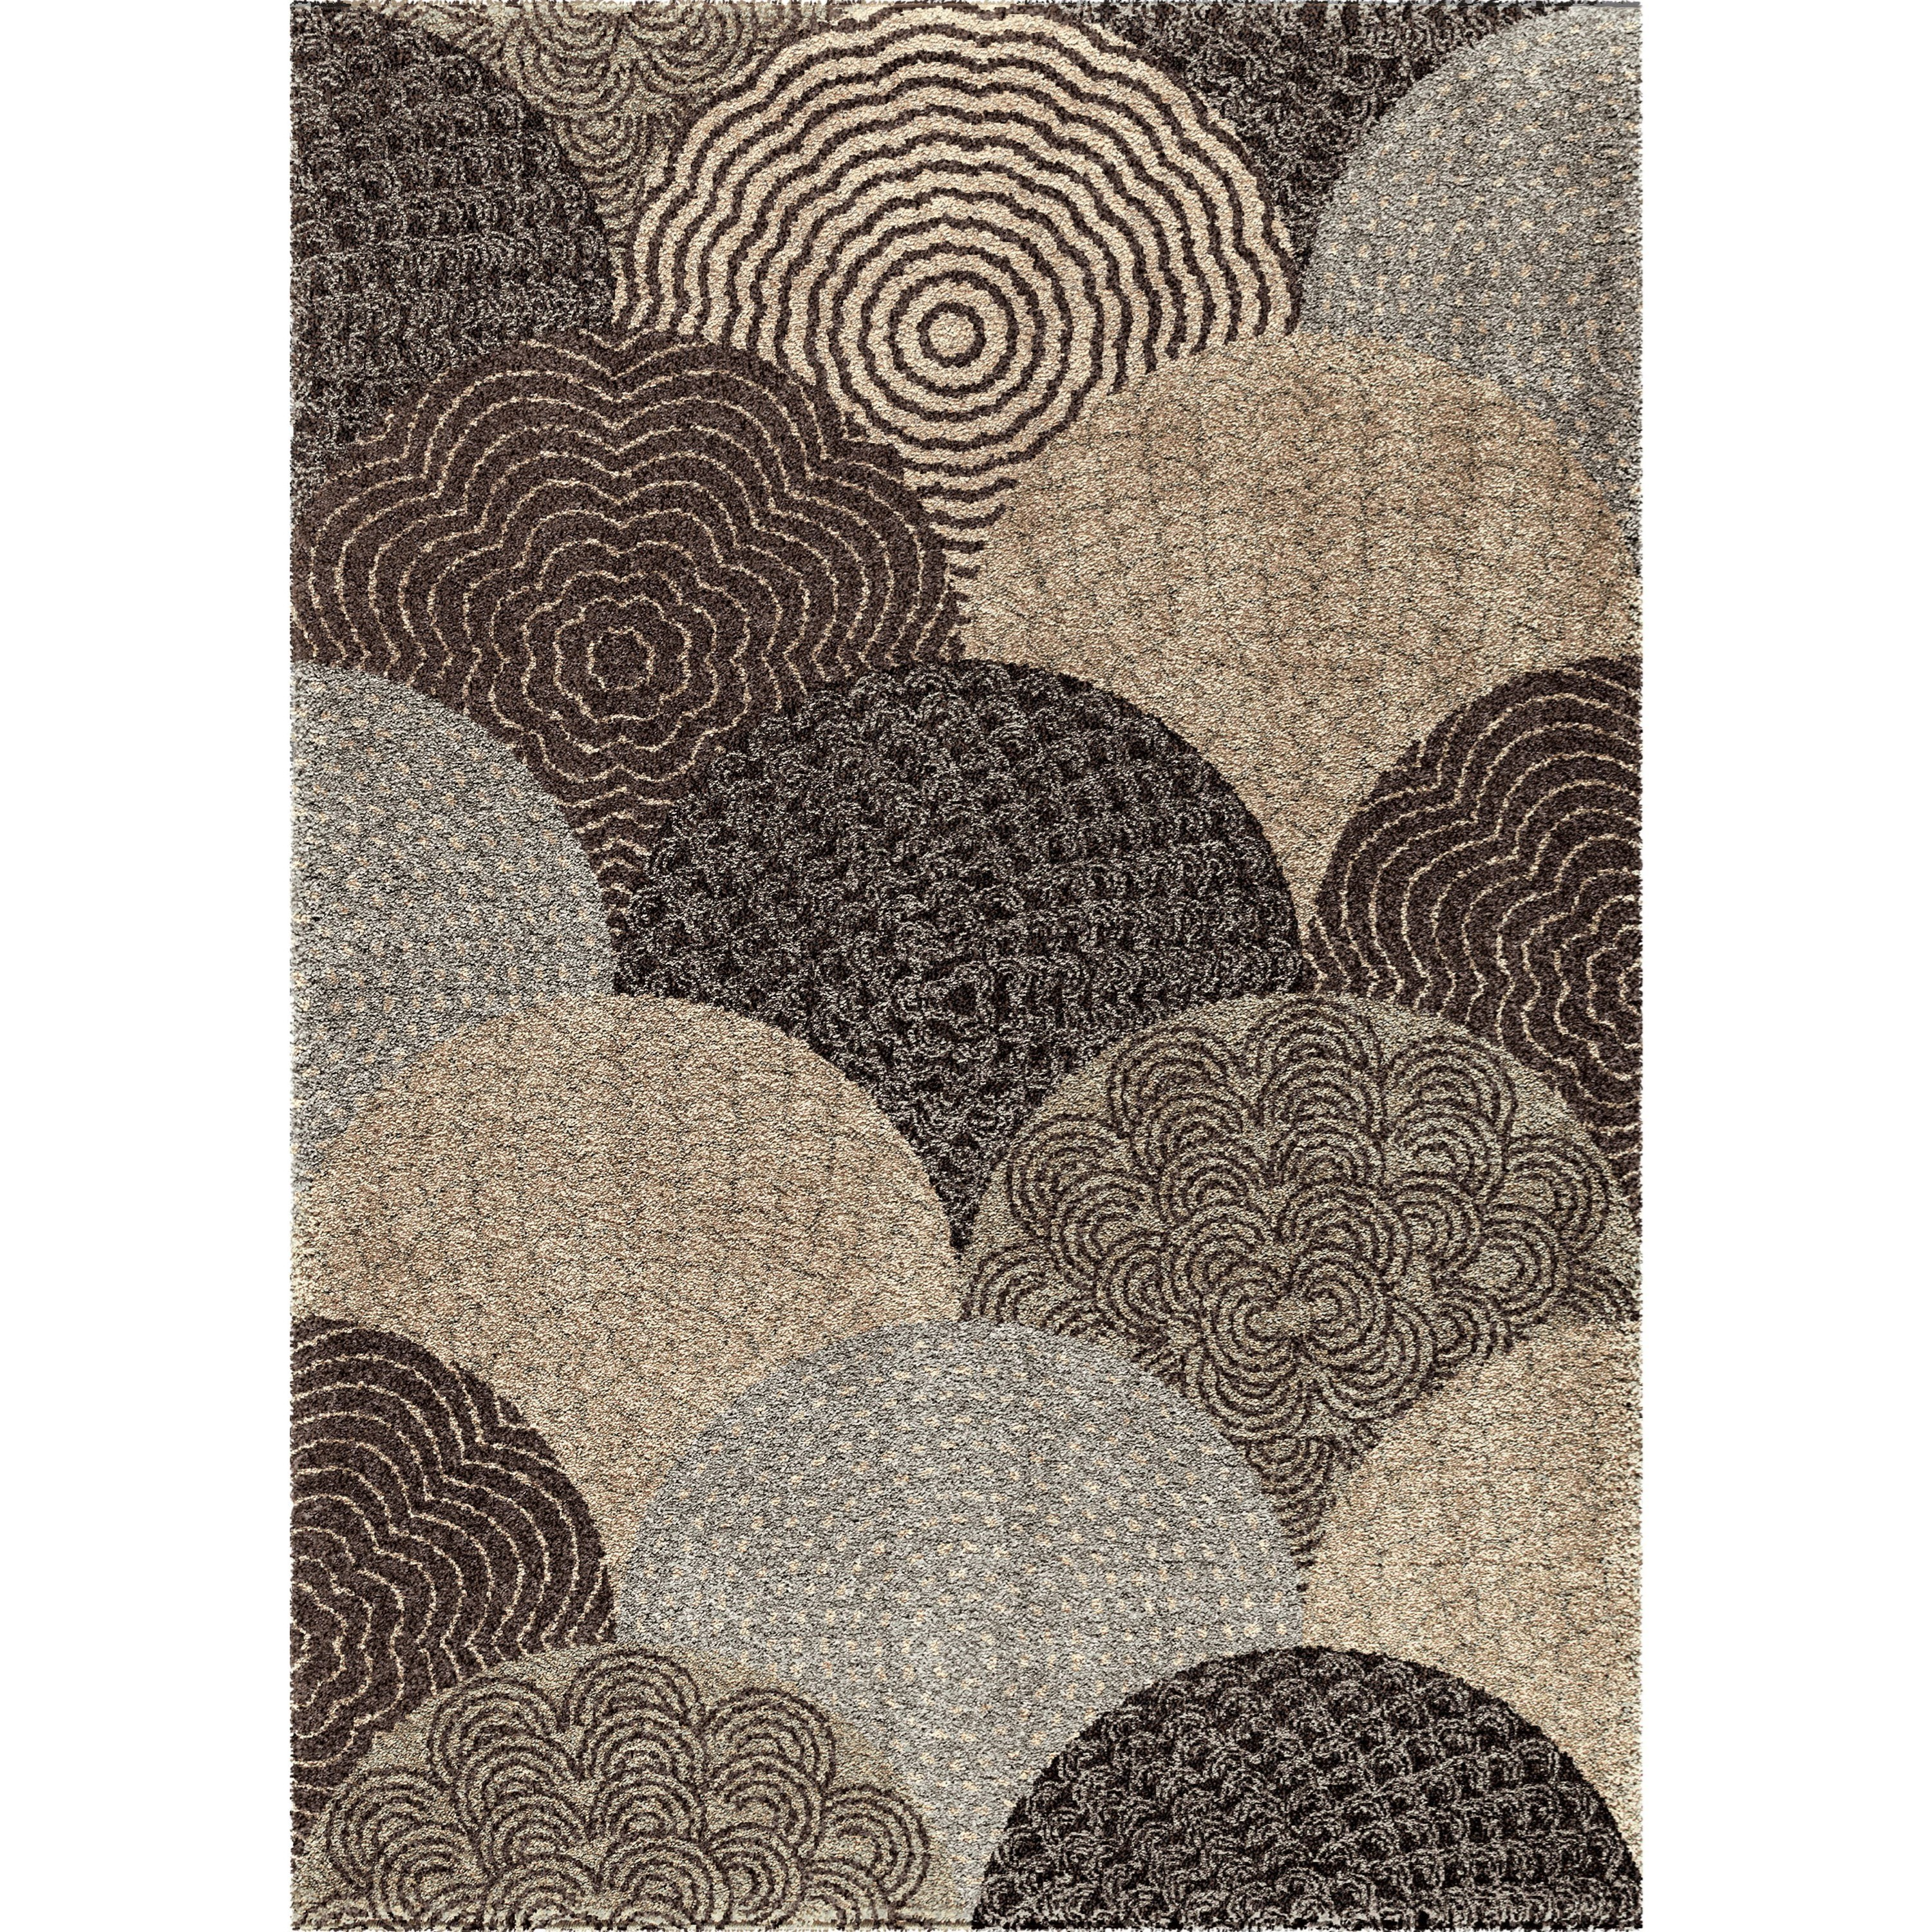 """Wild Weave Oystershell Seal Black 7'10"""" x 10'10"""" Rug by Orian Rugs at Mueller Furniture"""